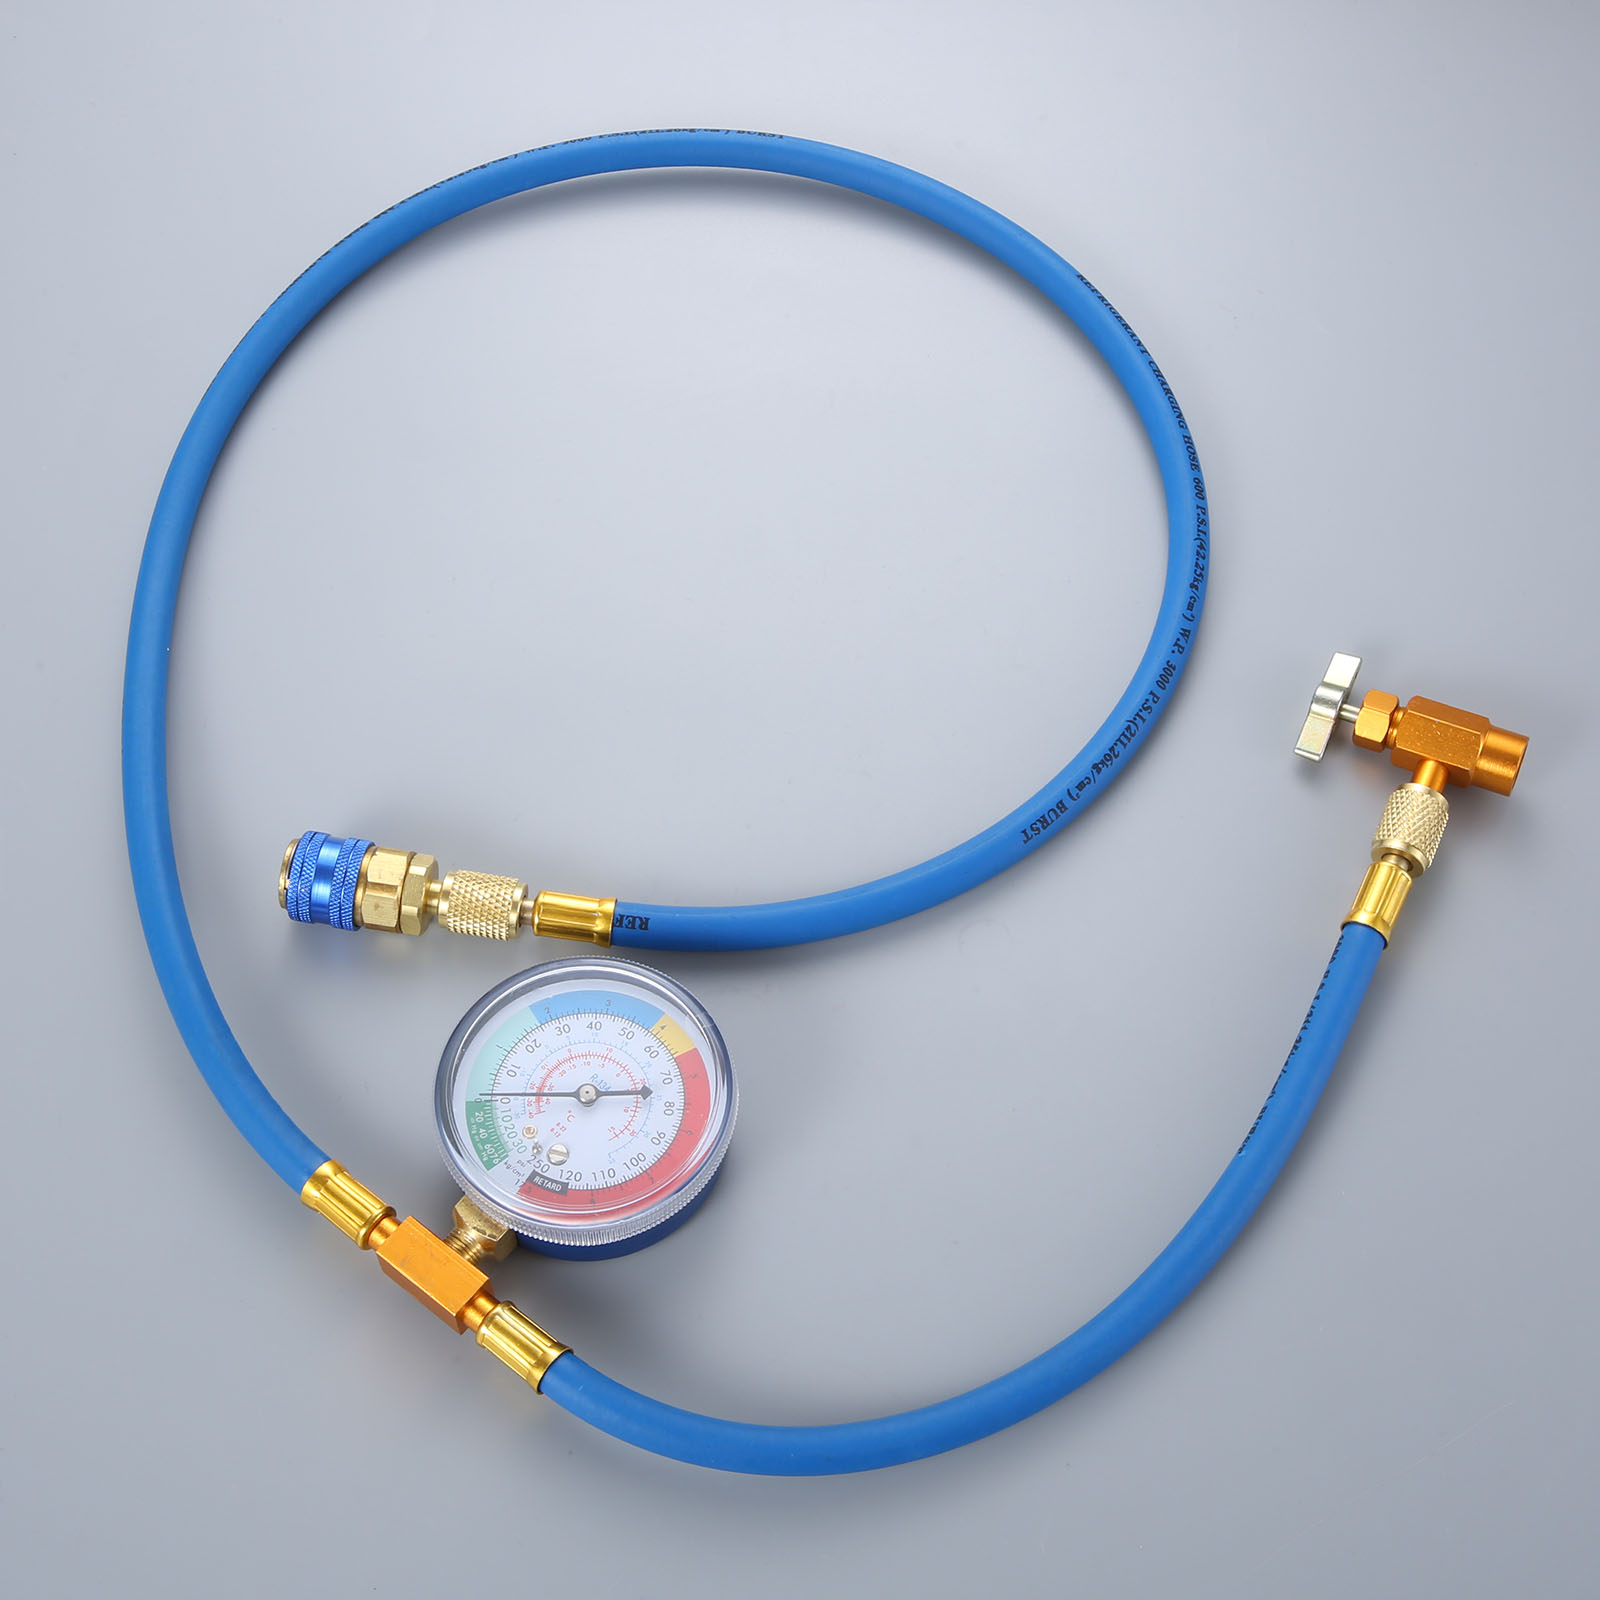 Image 4 - Car AC Air Conditioning R134A Conditioning Refrigerant Recharge Hose w/ Pressure Gauge Can Opener Quick Coupler-in Air-conditioning Installation from Automobiles & Motorcycles